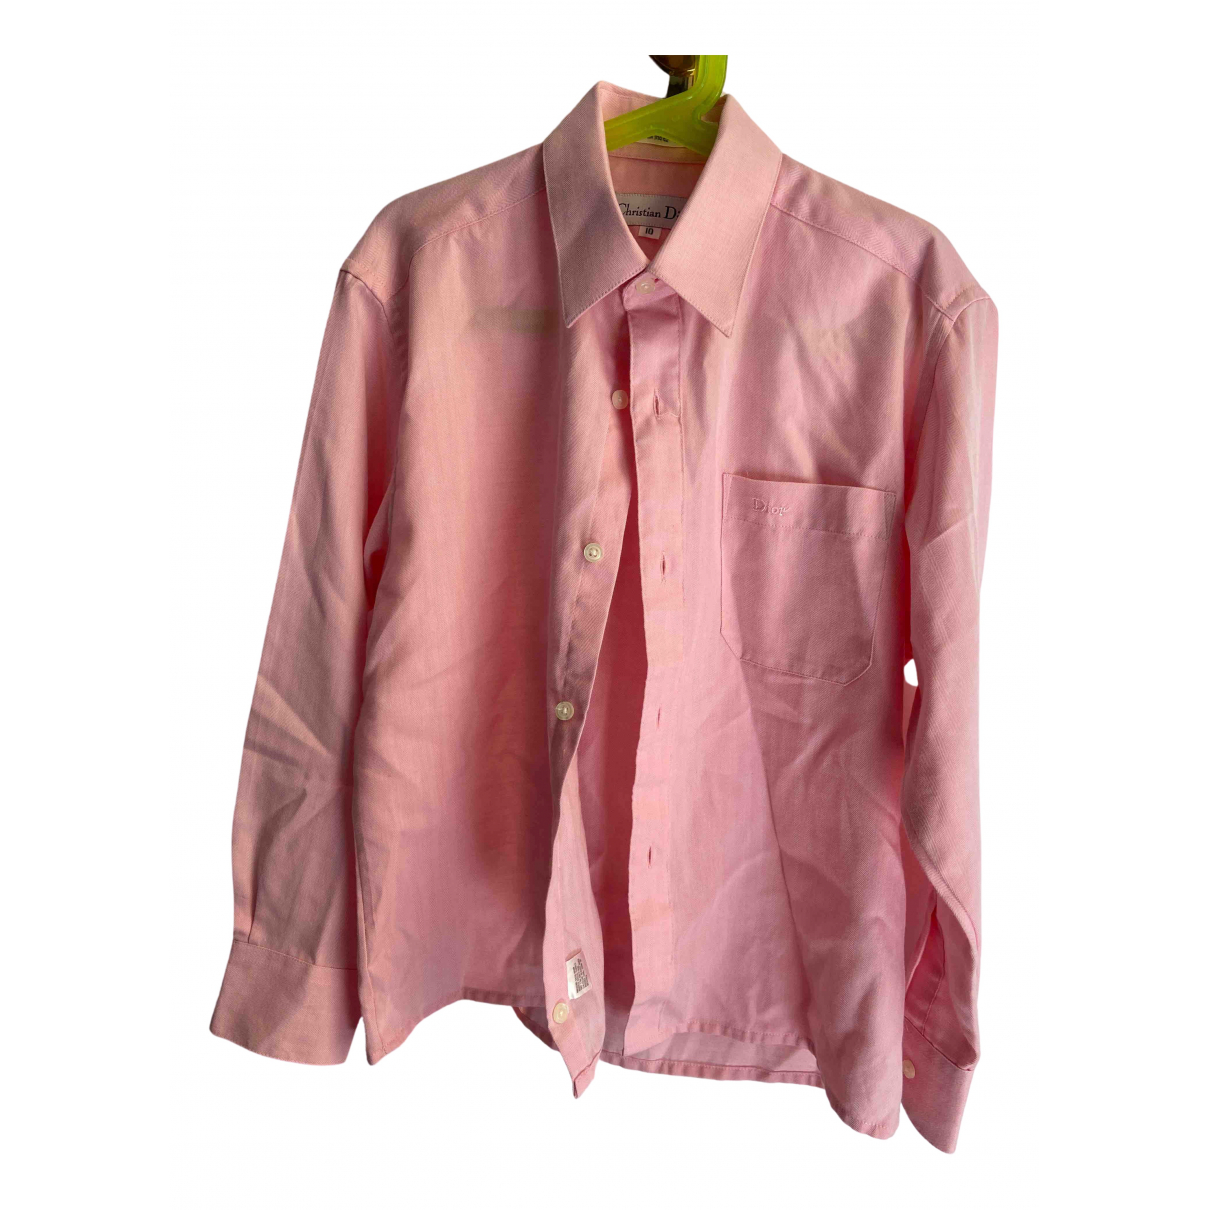 Dior \N Pink Cotton  top for Kids 10 years - until 56 inches UK